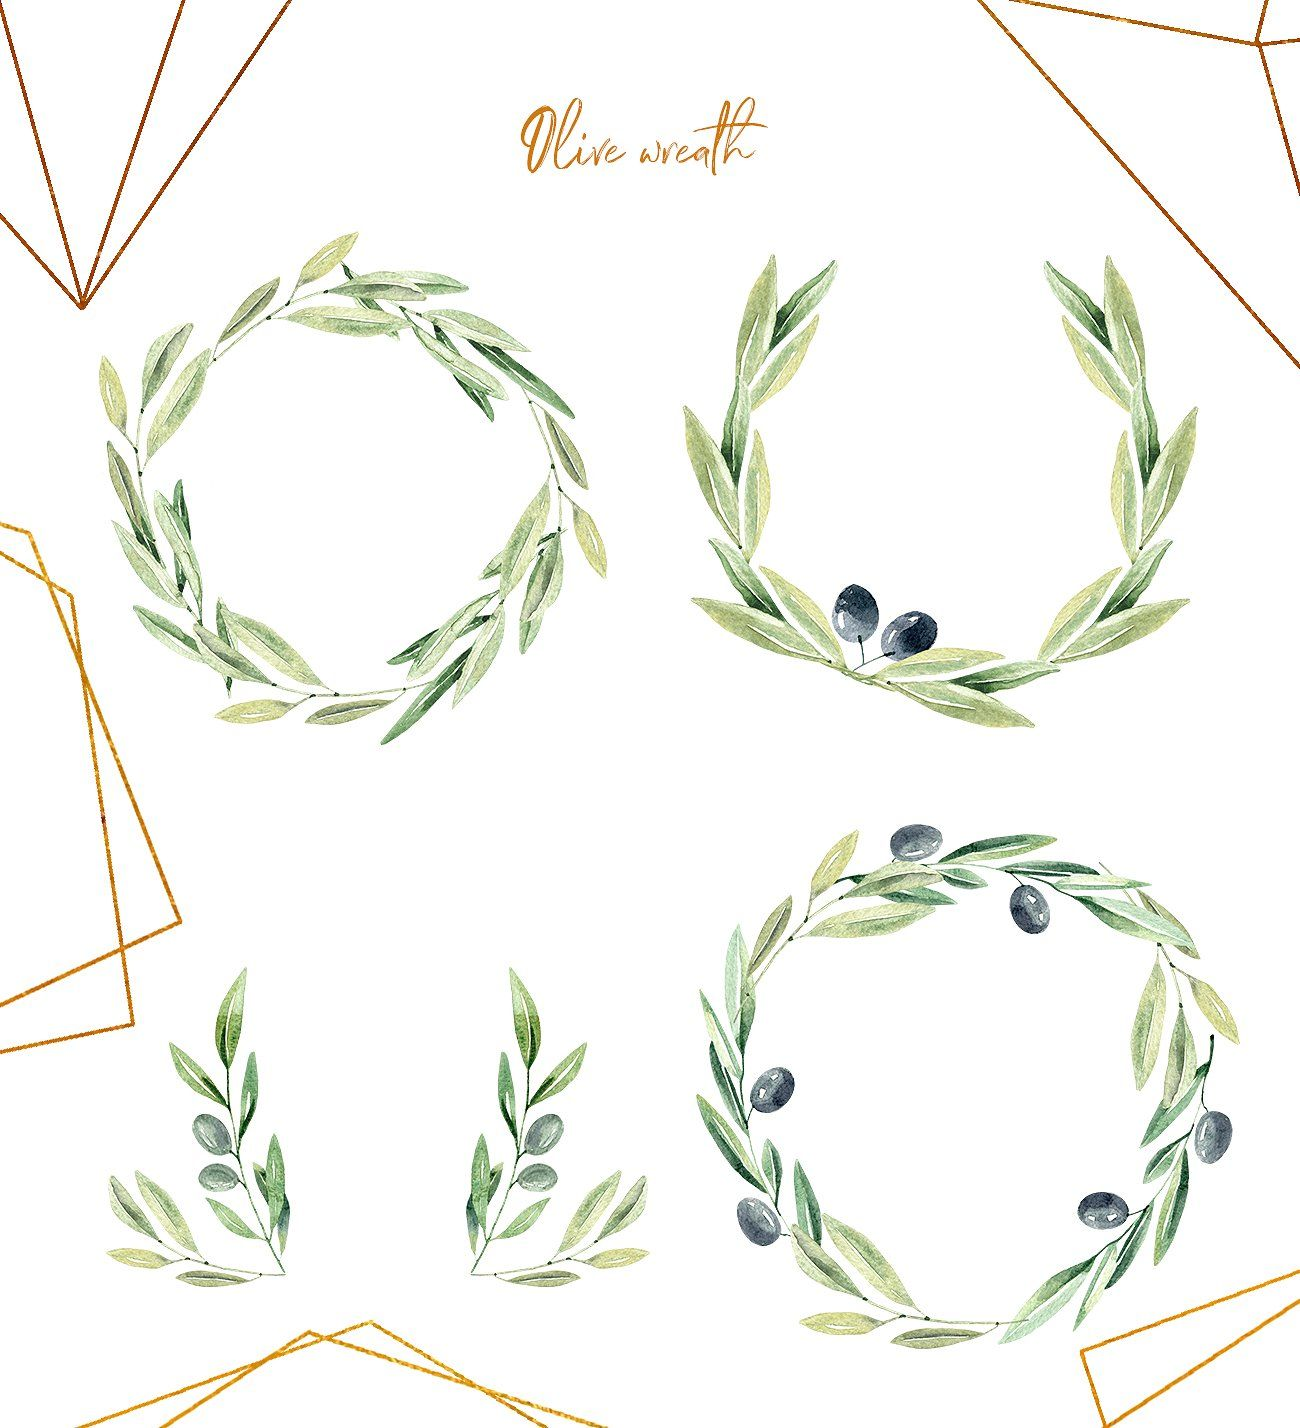 Watercolor Olive Branches Olive Branch Olive Wreath Wreath Watercolor